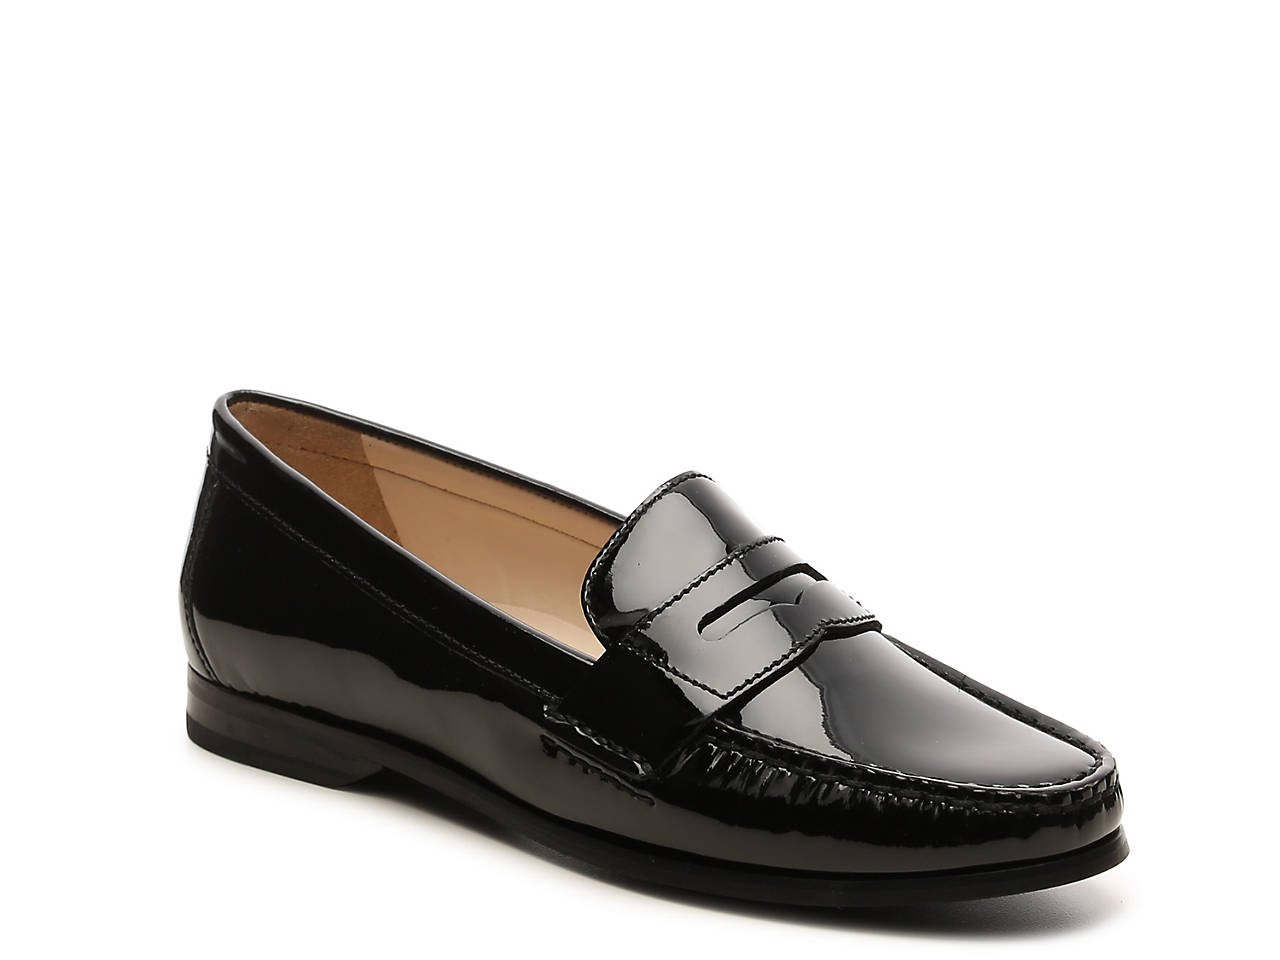 47e6675ebe0 Cole Haan Emmons Loafer Women s Shoes